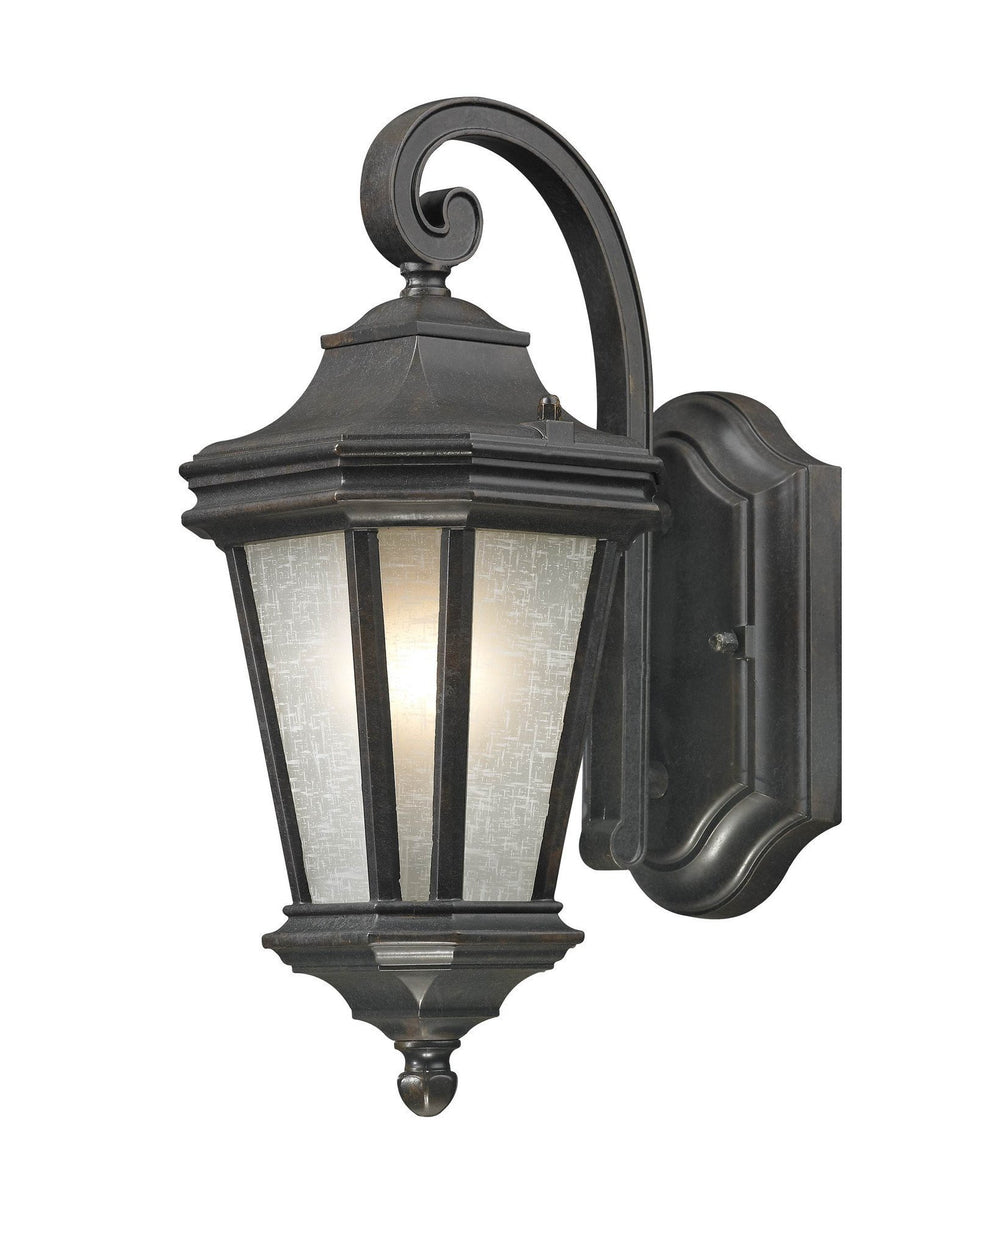 9401-34 Dolan Designs Lakeview 1 Light Wall Olde World Iron